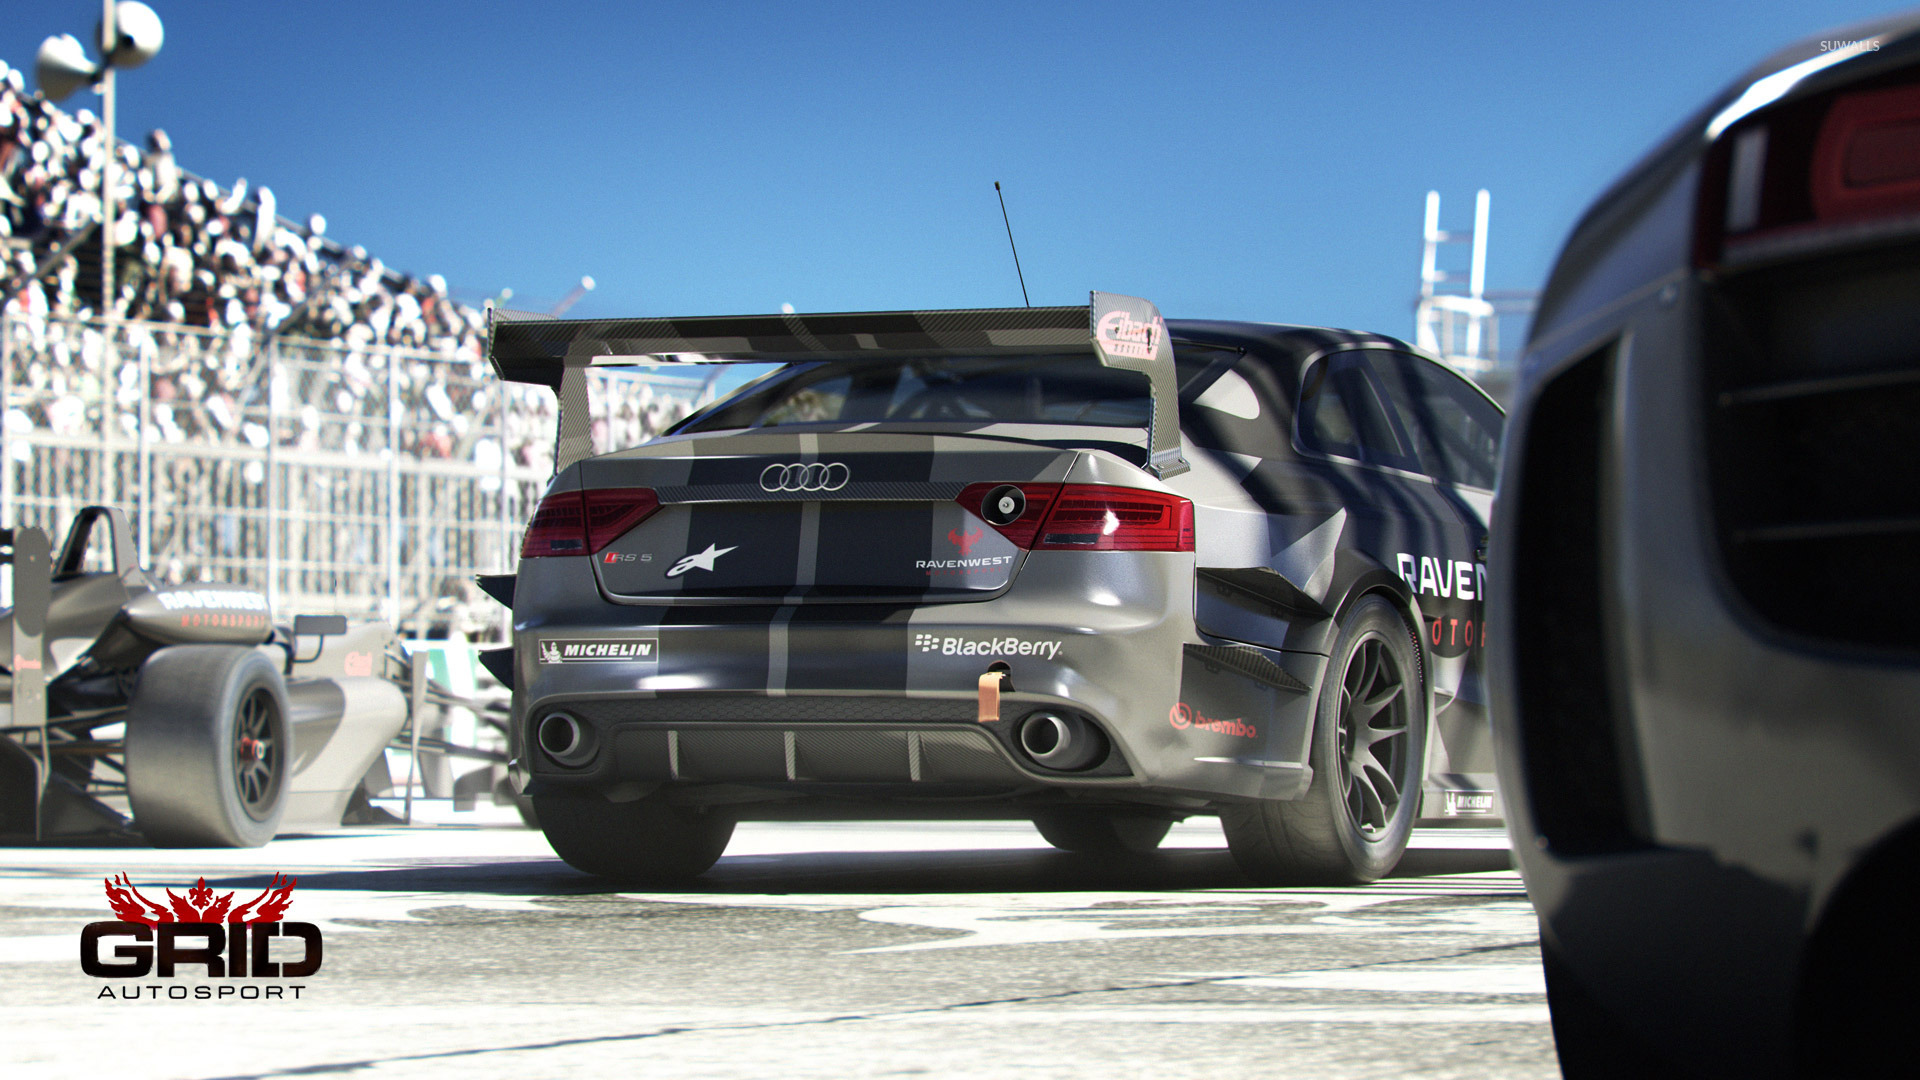 GRID Autosport [15] wallpaper - Game wallpapers - #31249